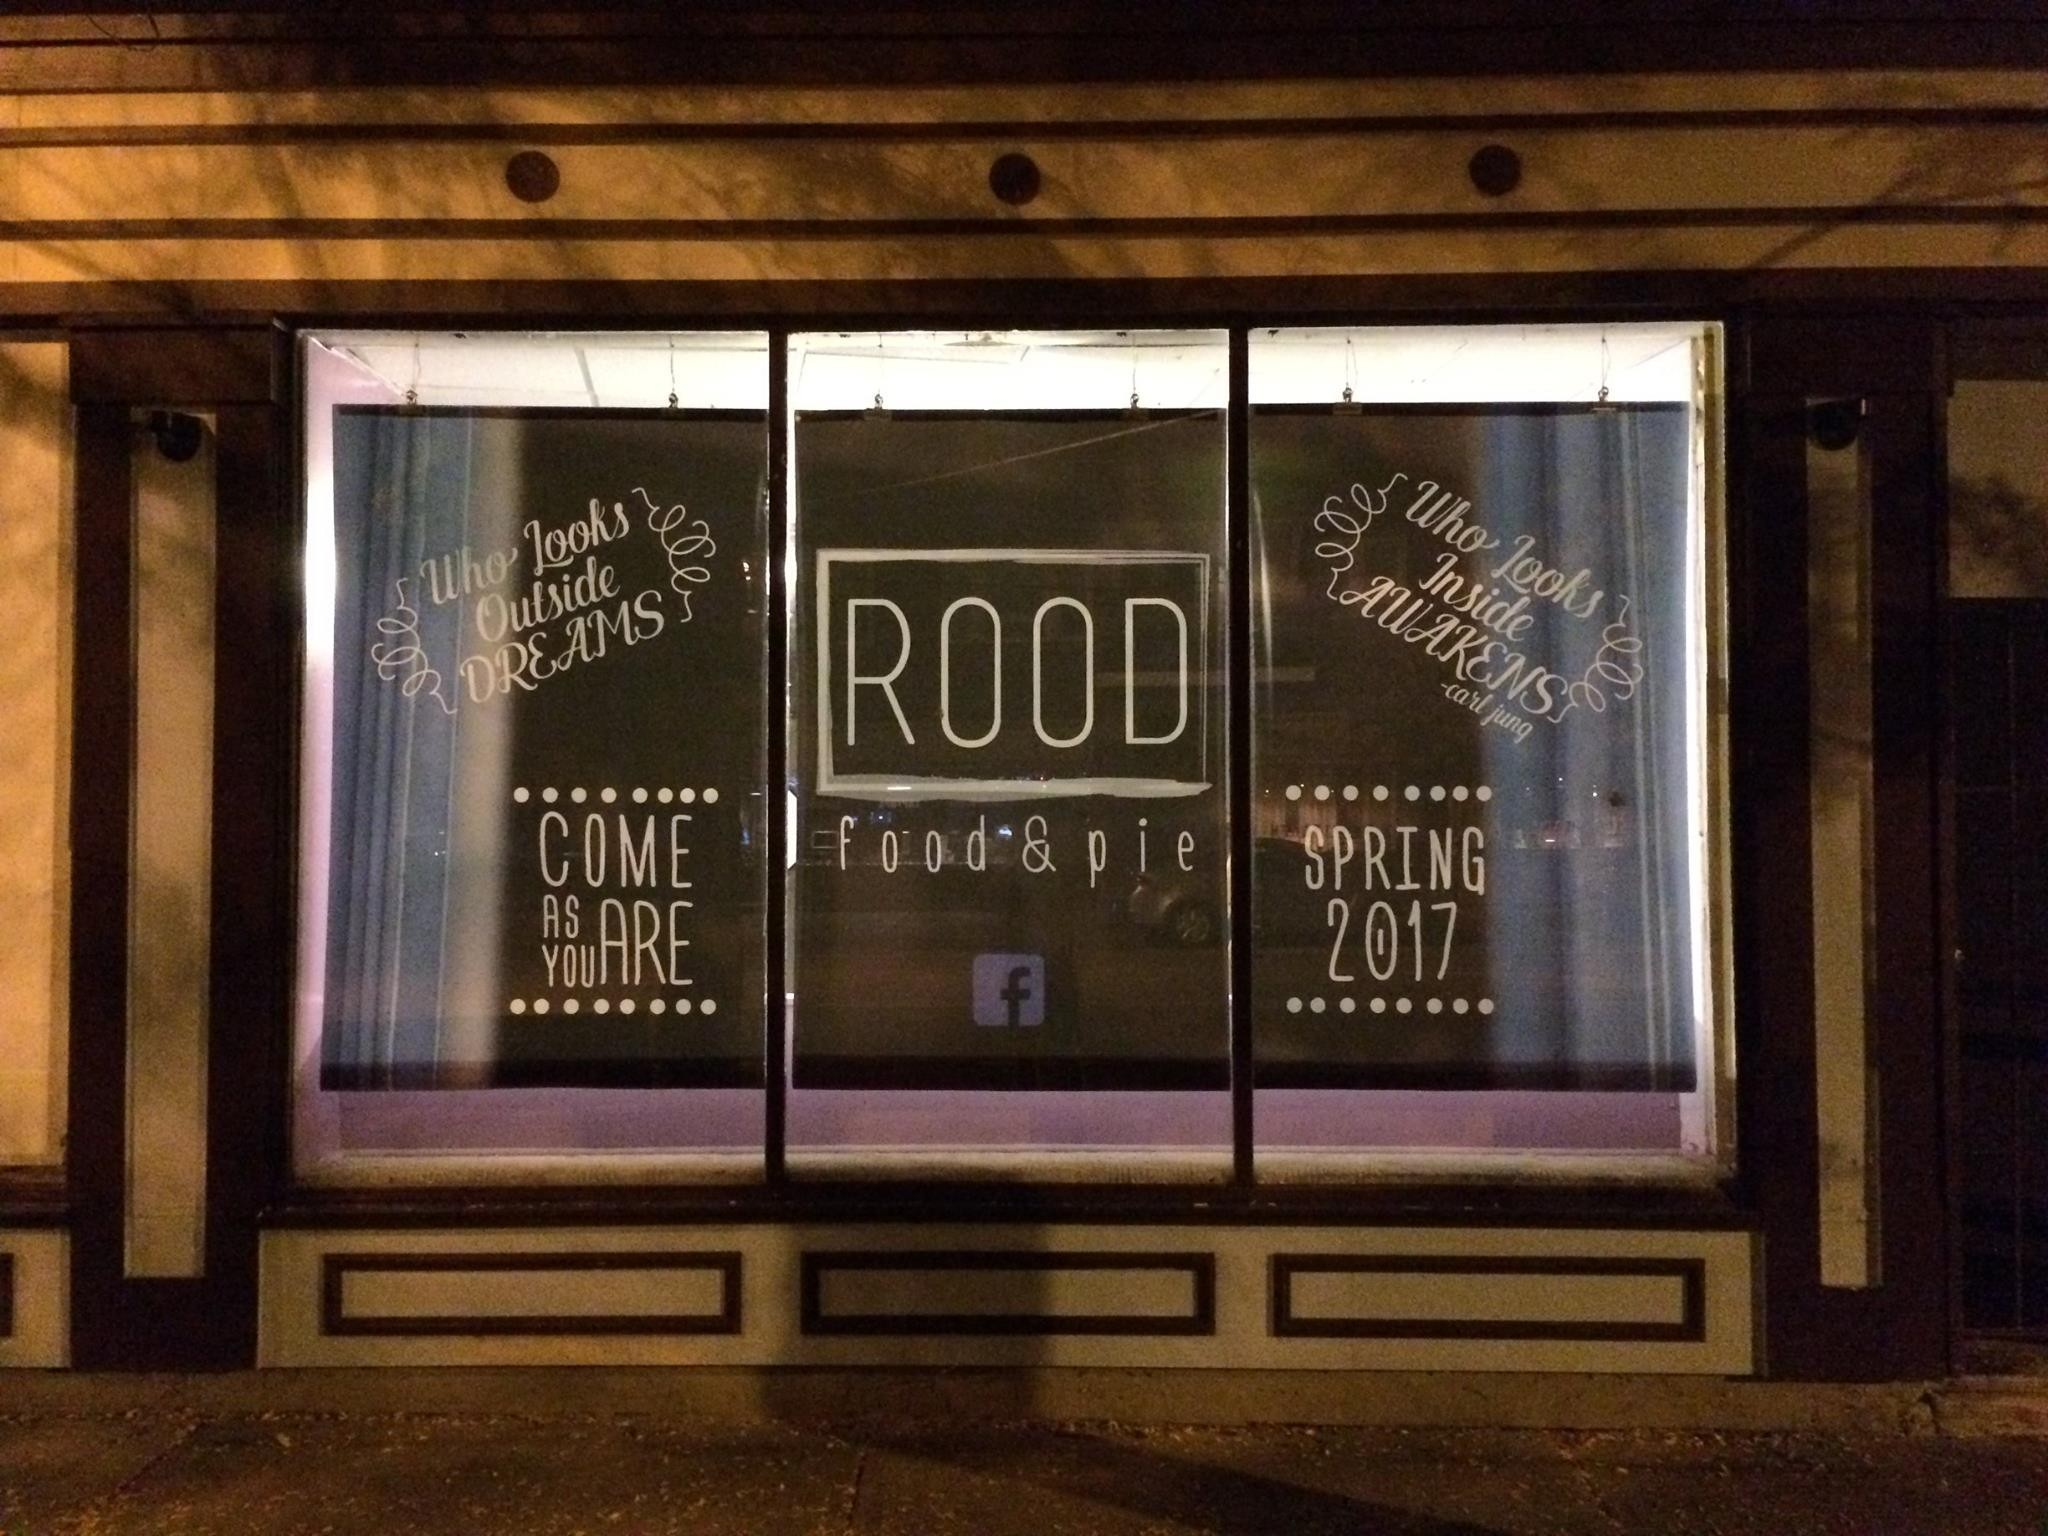 Rood Food and Pie Now Open in Lakewood a través de calendario escolar 2019 puerto rico crédito de la imagen clevescene